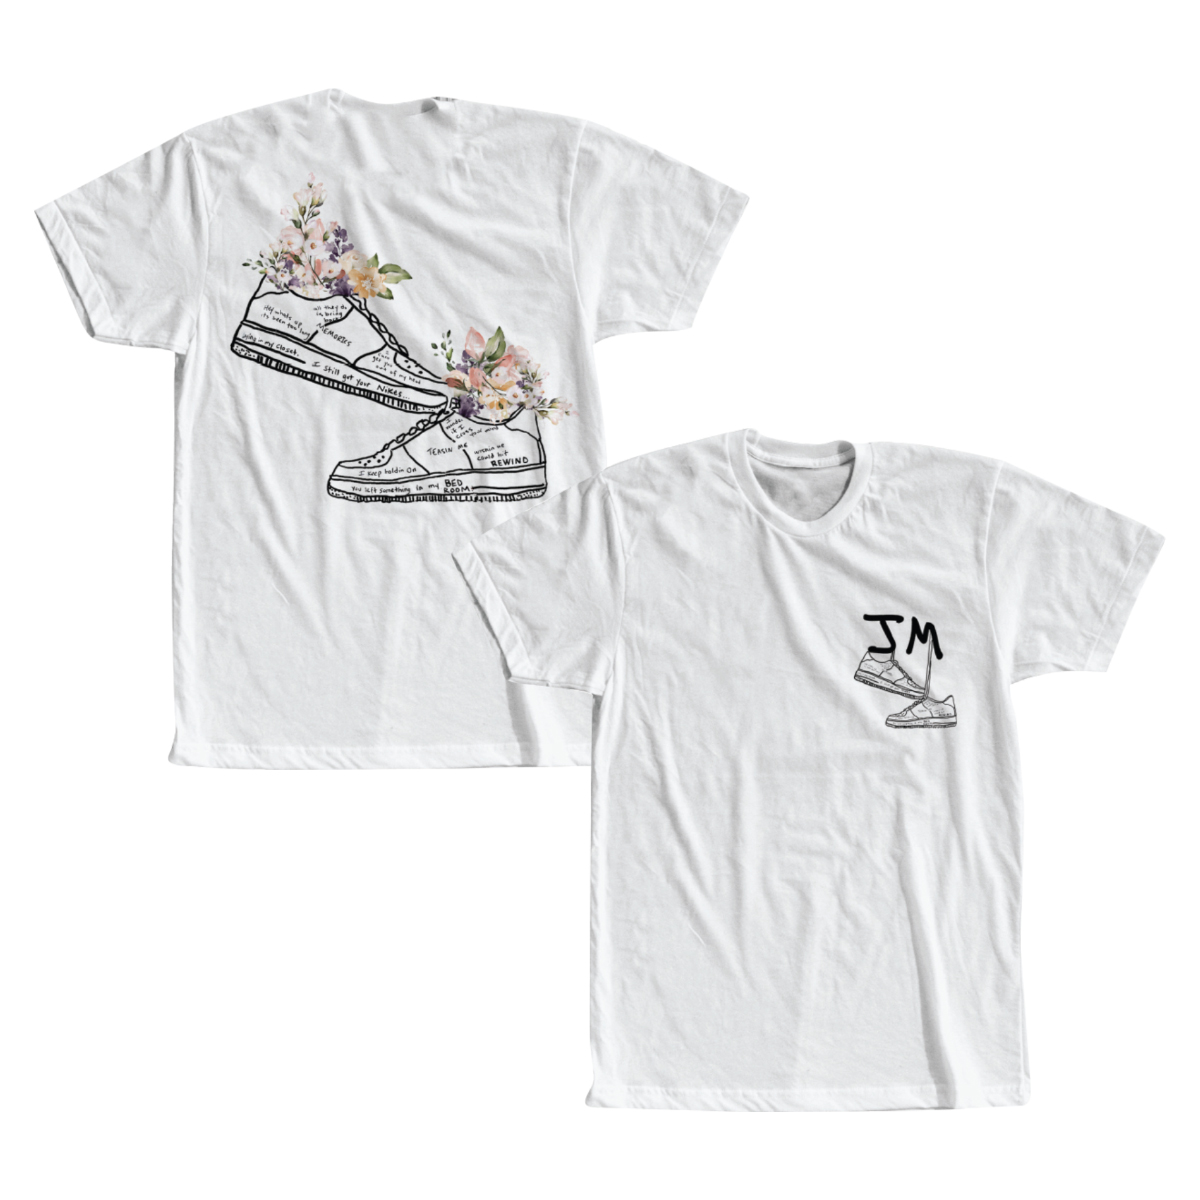 WHITE NIKES T-SHIRT